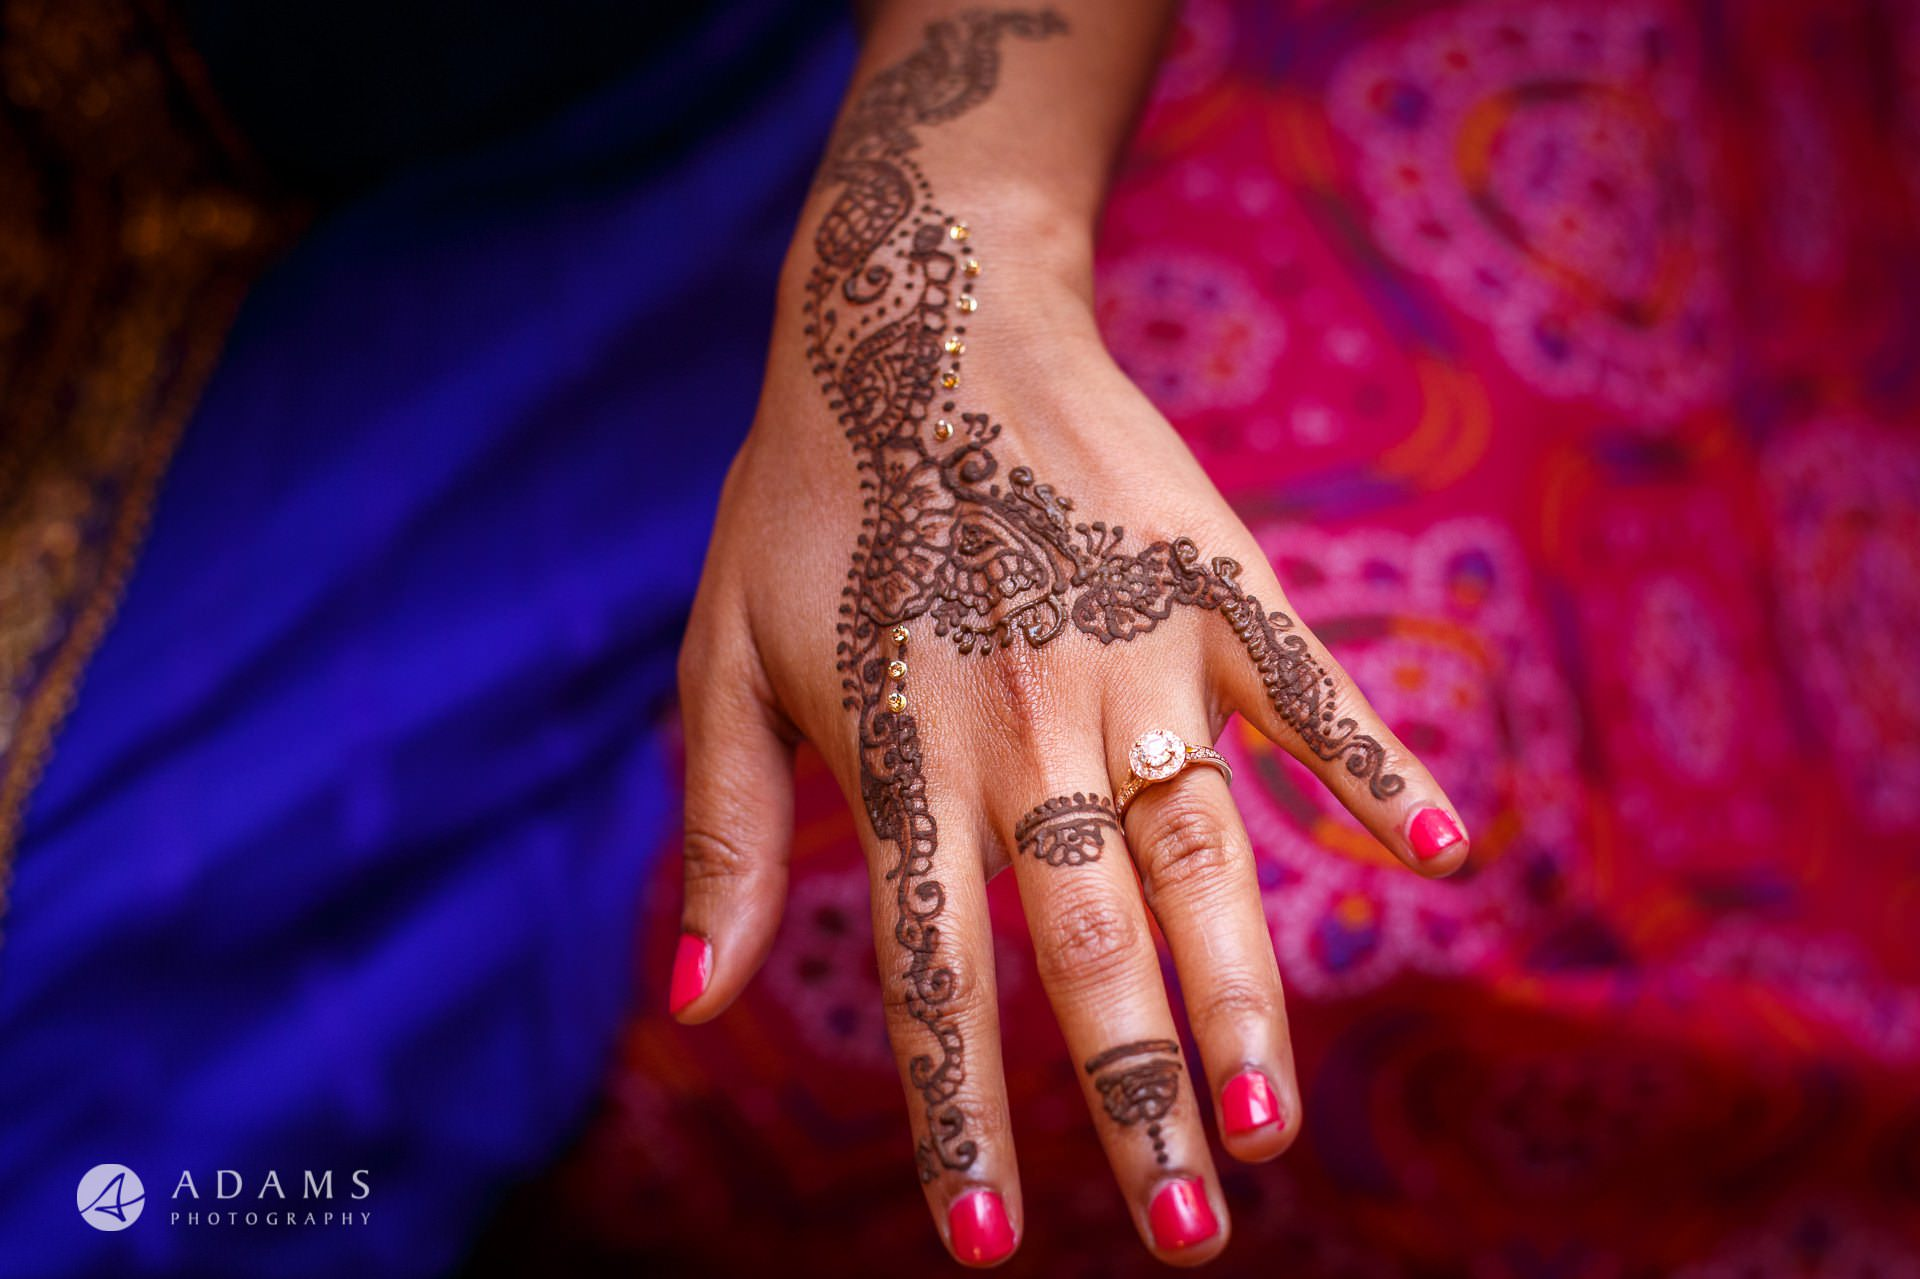 Mehndi Night : Tamil mehndi night gold melting ceremony